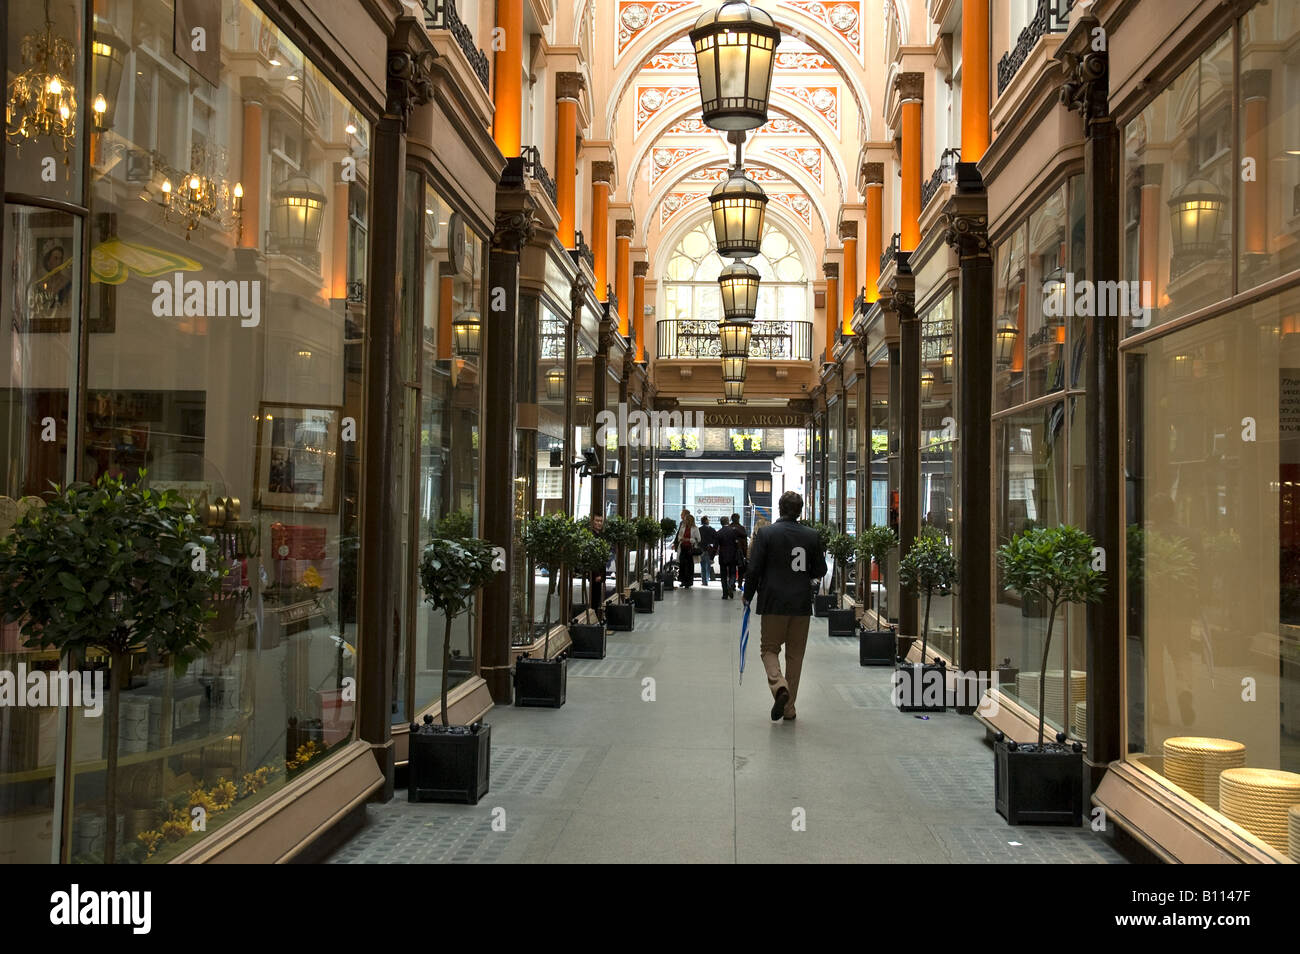 Shopping arcade off new bond street in mayfair london uk for Quartiere mayfair londra